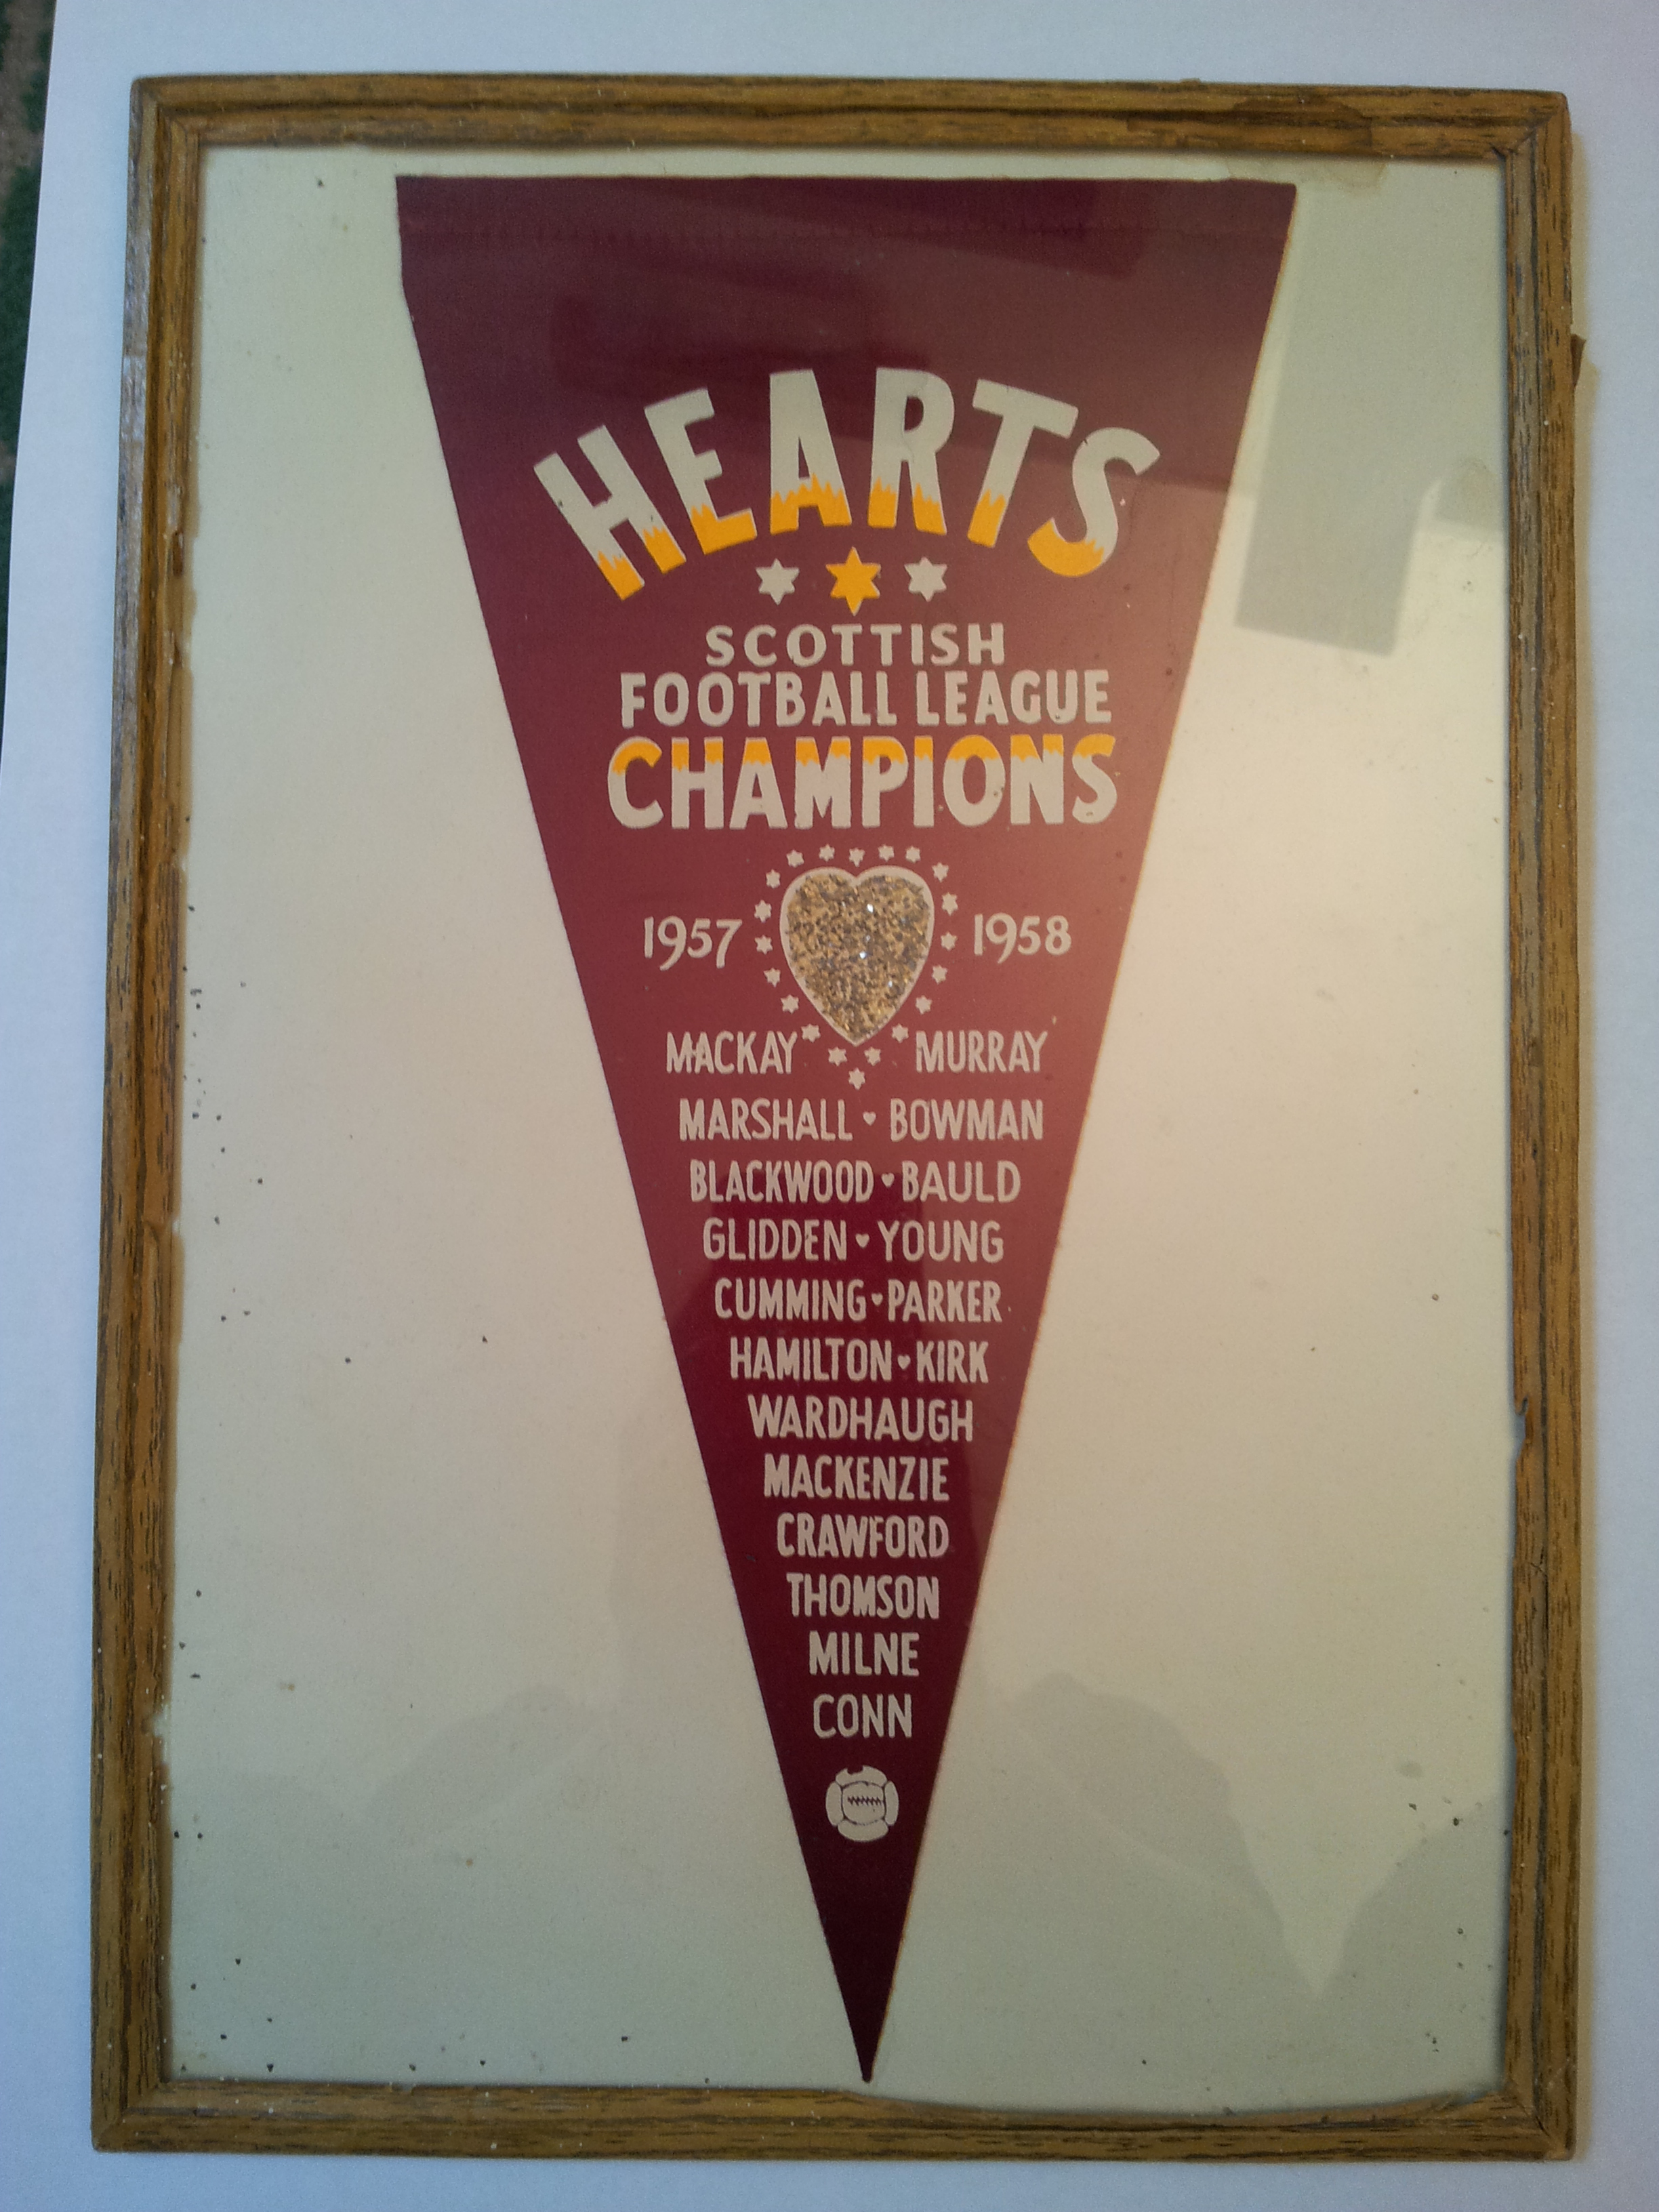 Hearts Scottish Football League Champions 57-58 banner